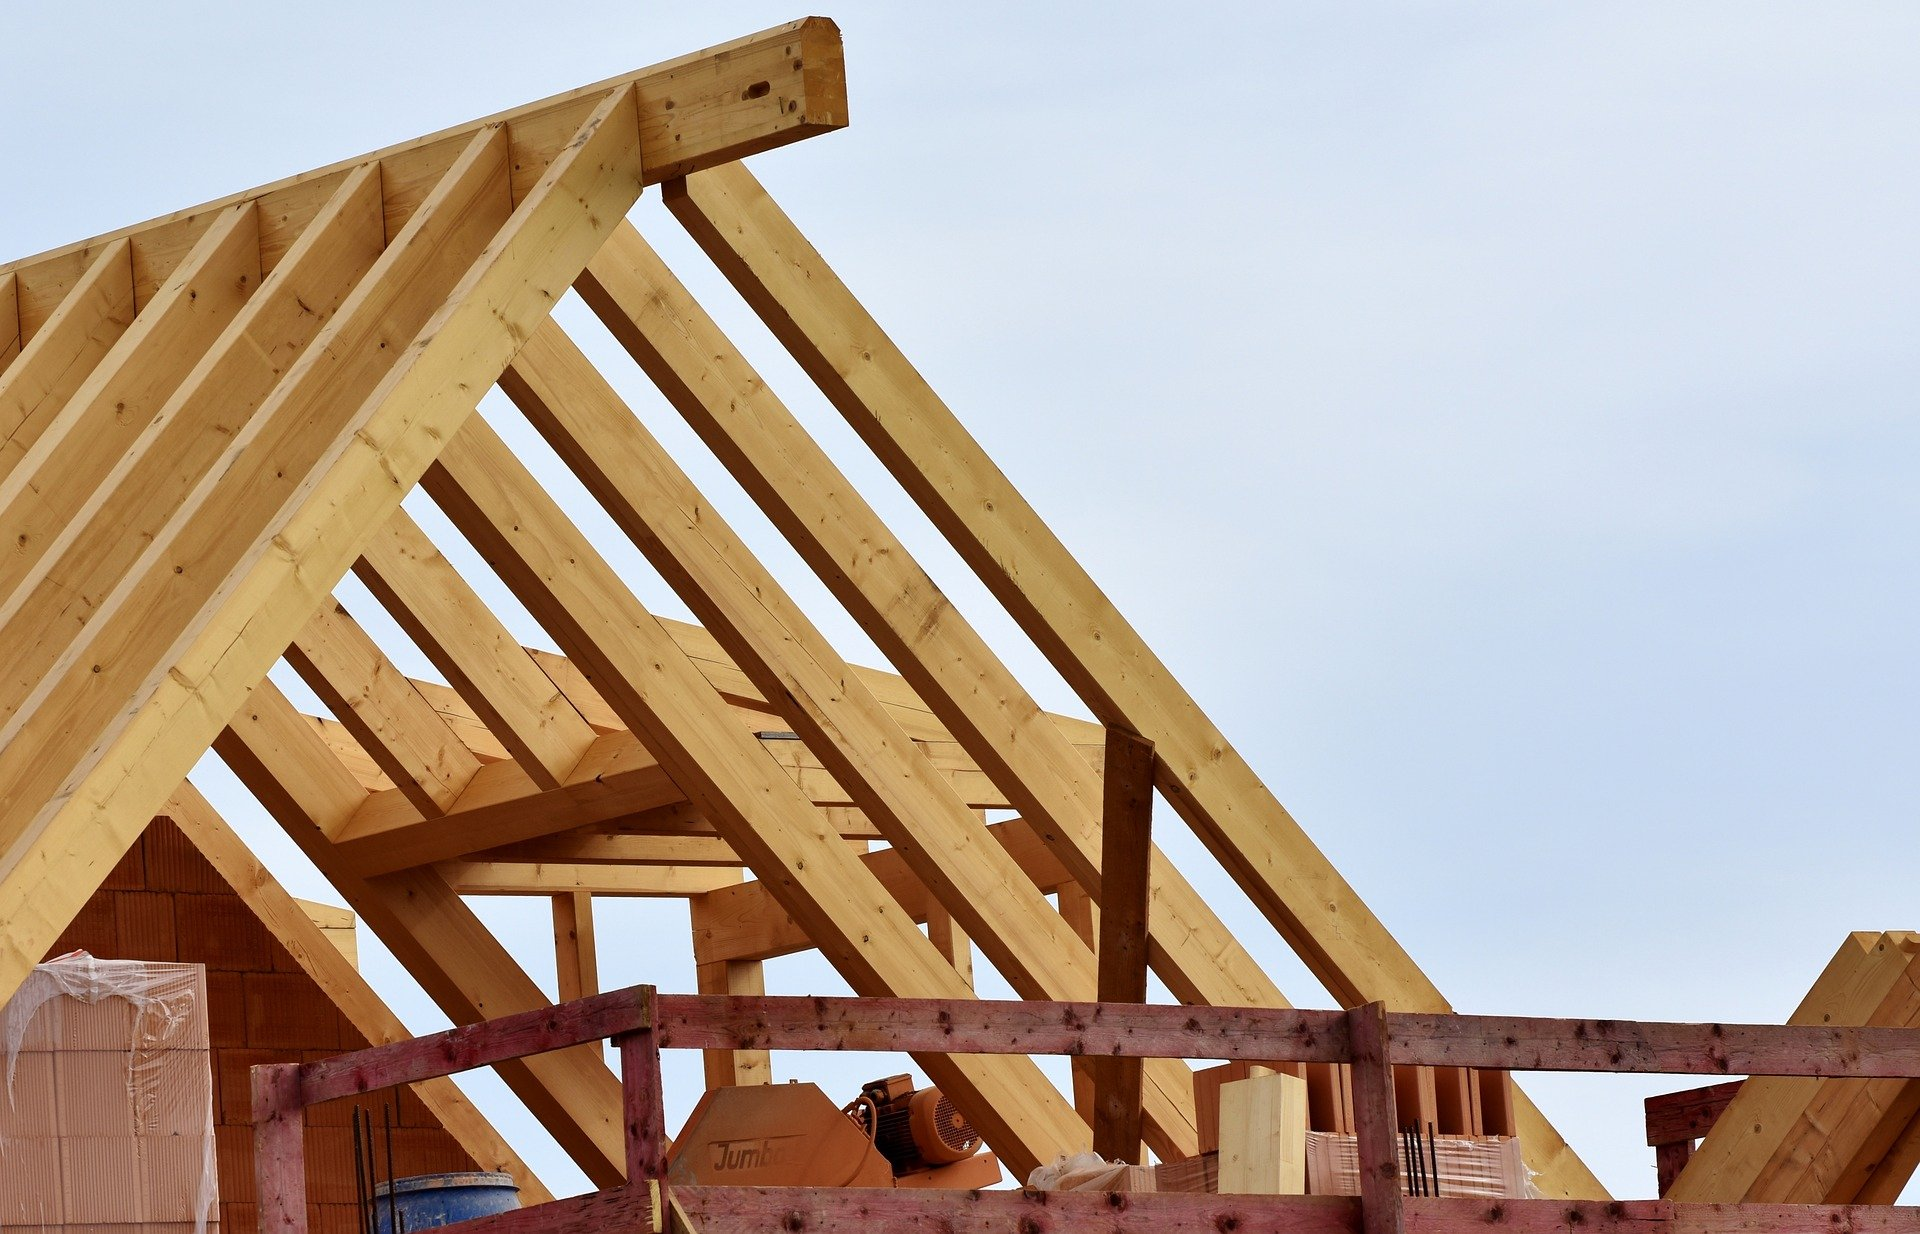 New Build Heat Standard: Our consultation response